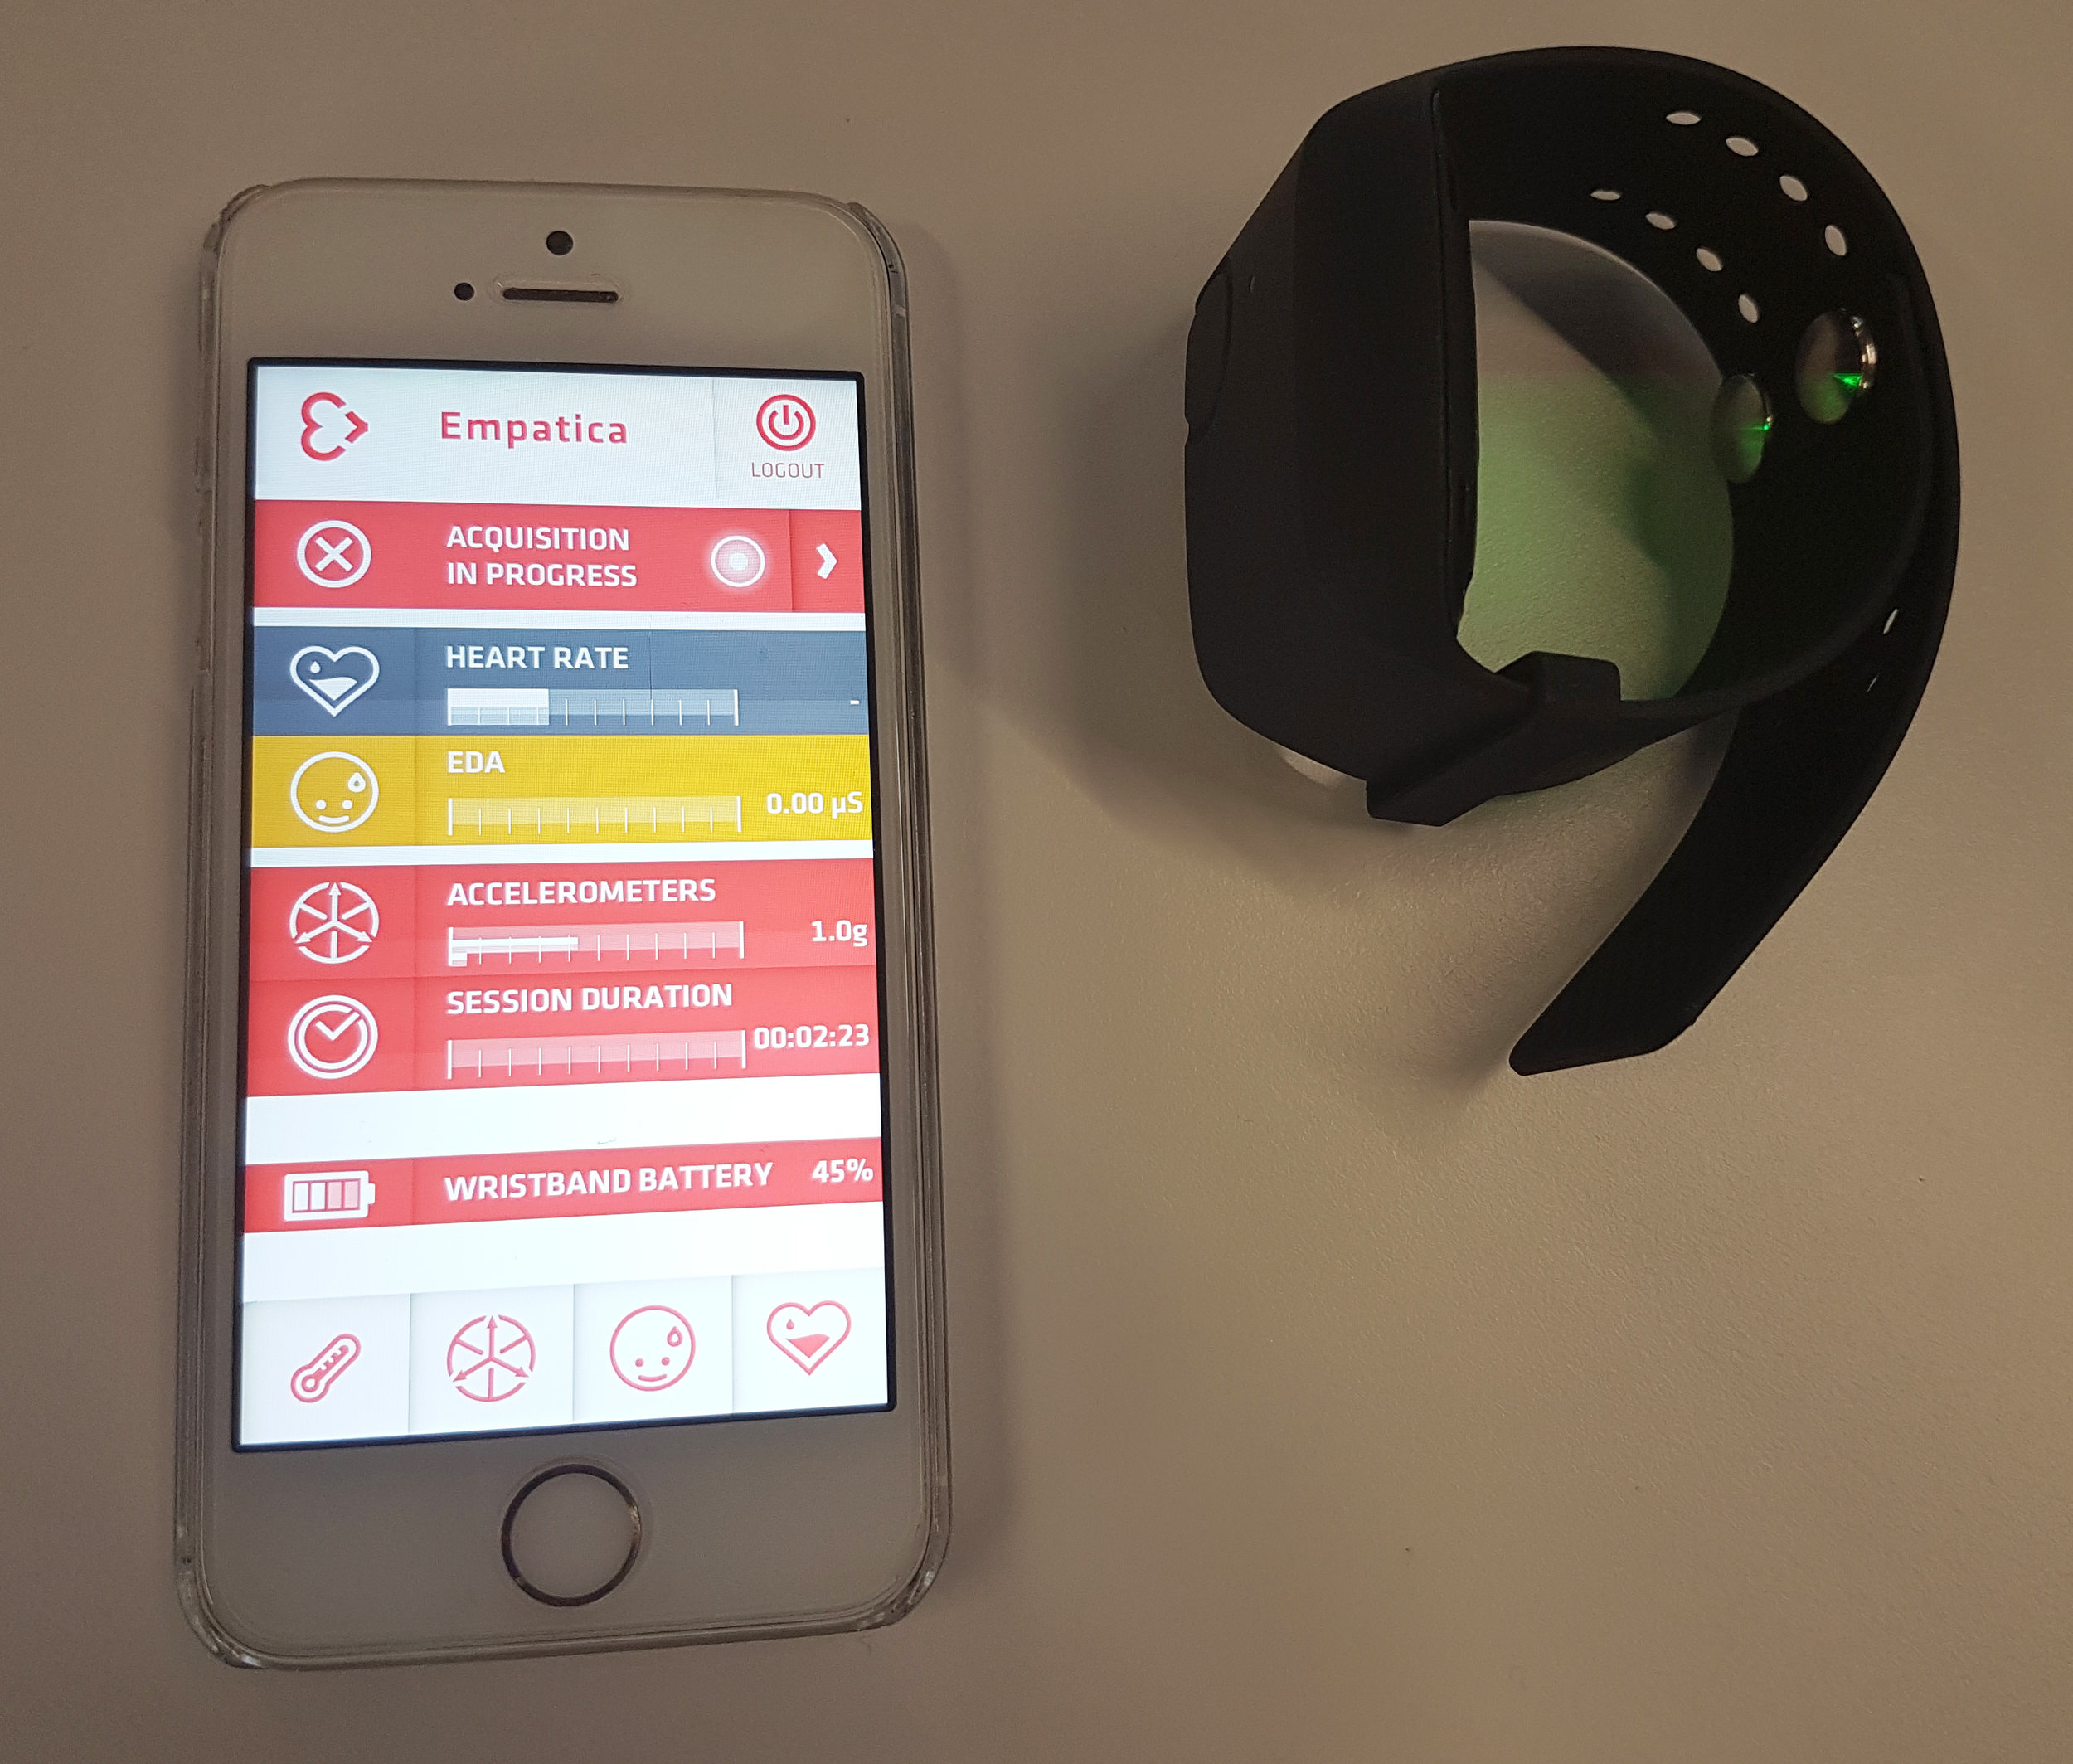 Empatica watch and app interface- measuring physiological processes that indicate arousal and activity levels.